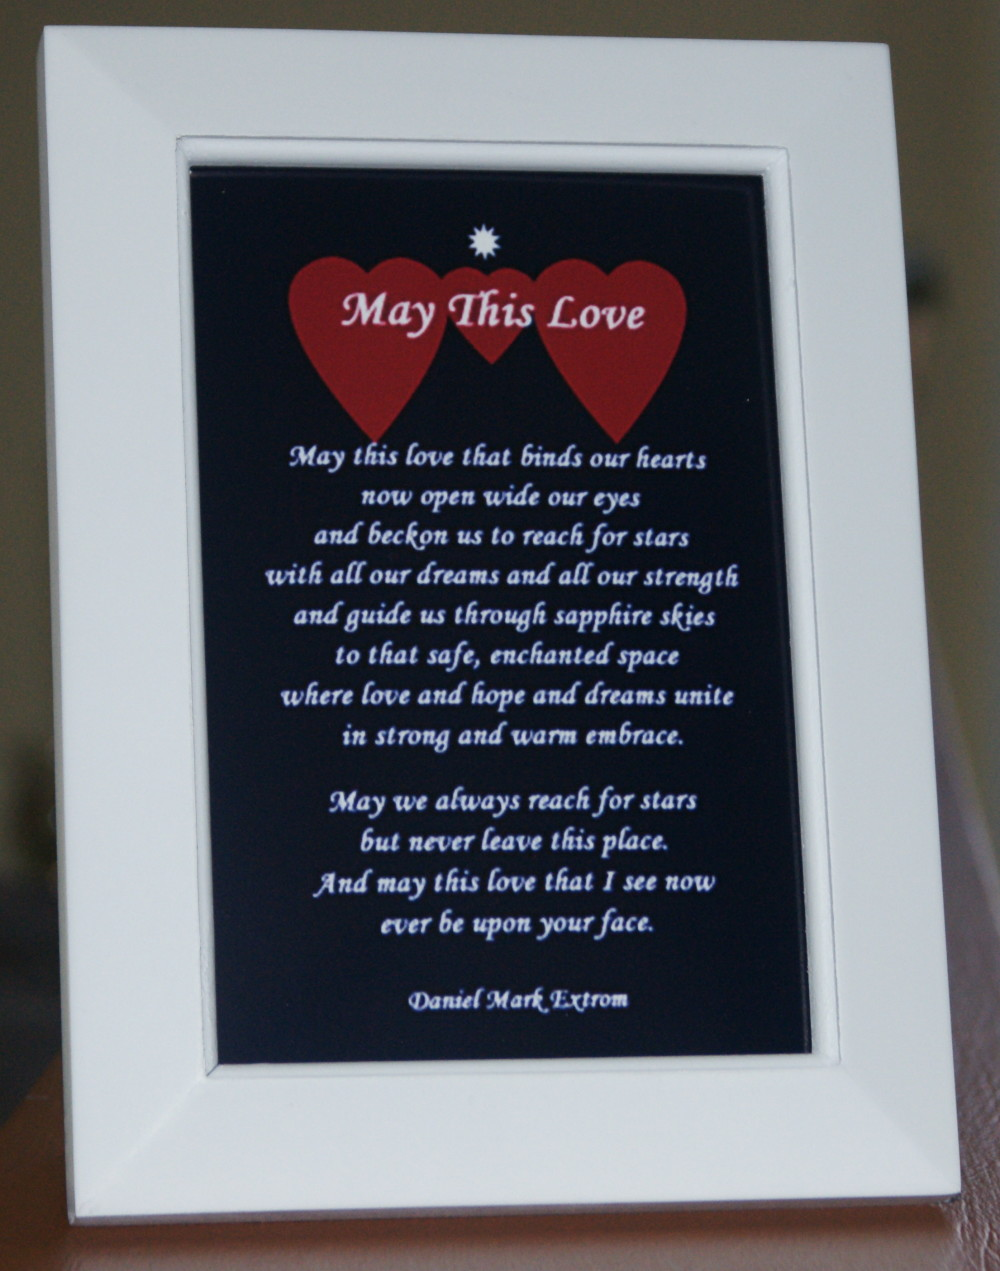 May This Love. Longer Version. Blue Background. White Frame 6x4 inches